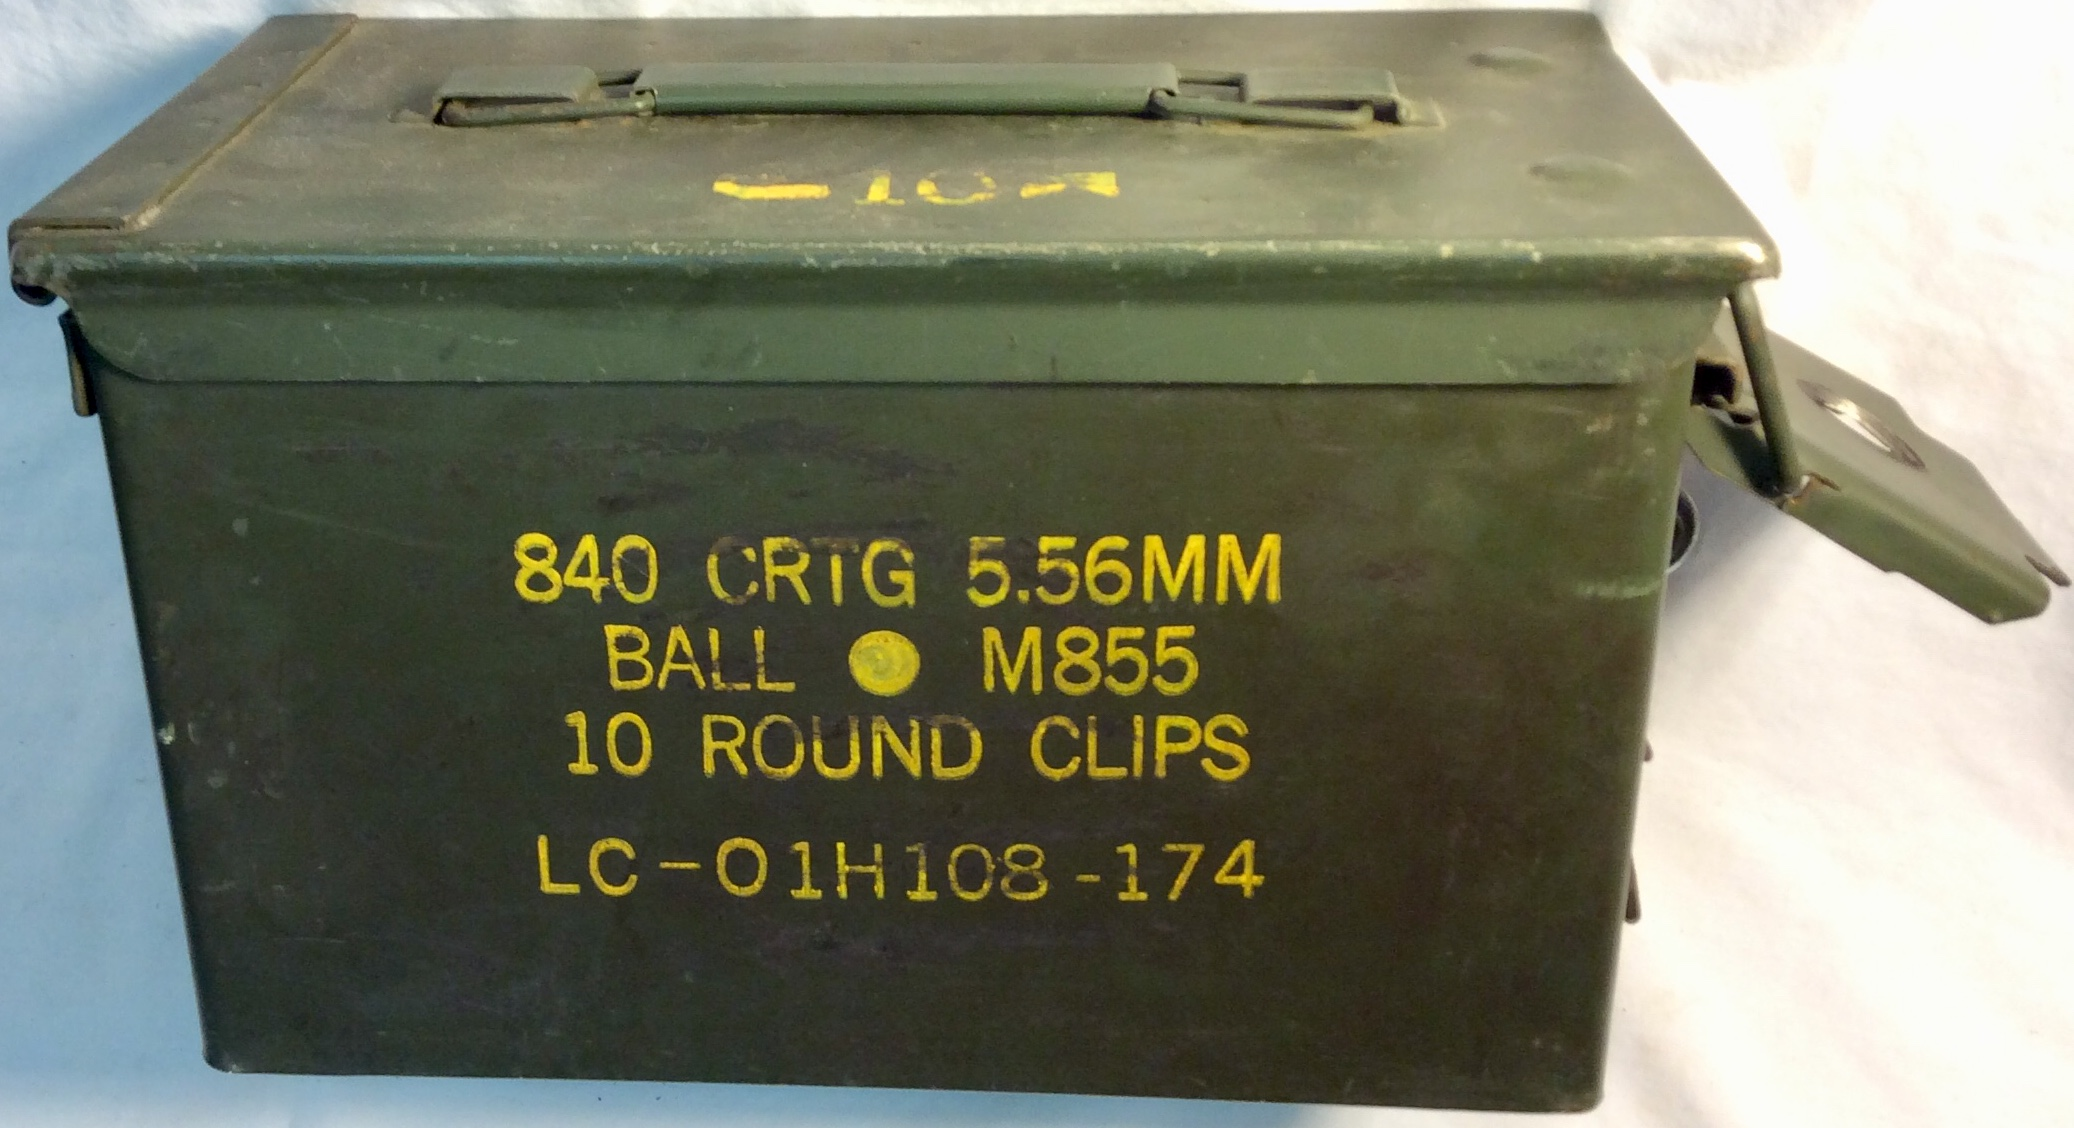 Military metal ammunition box for 10 round clips.